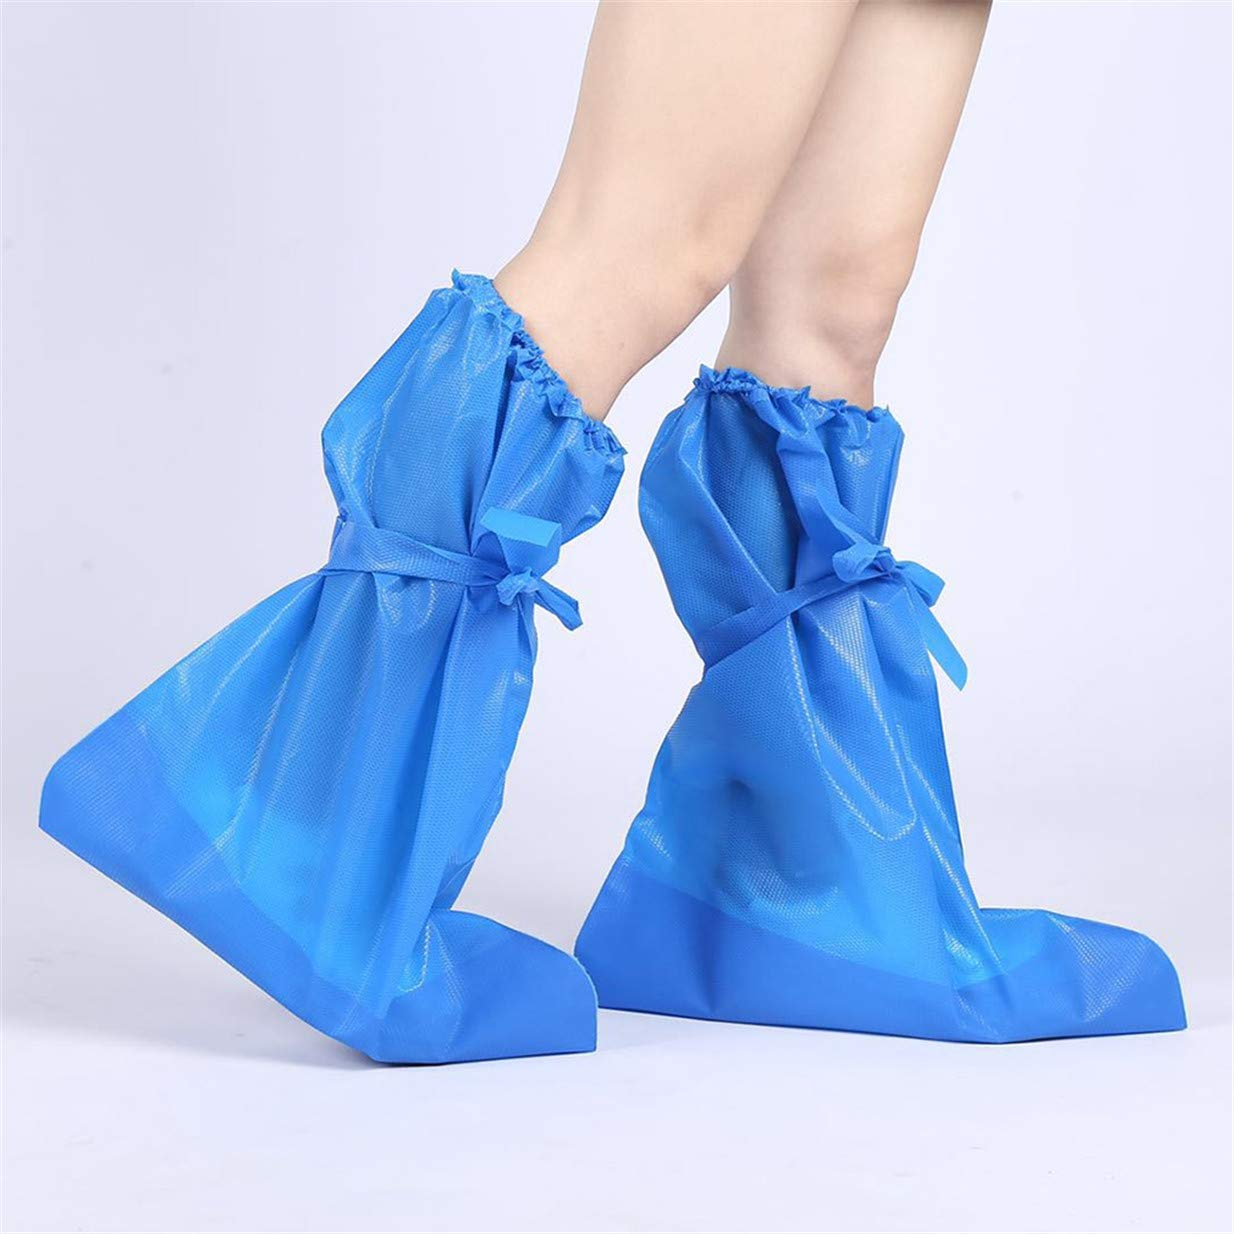 EJY 1pair Overshoes Disposable Boot Shoe Covers Plastic Waterproof Shoe Covers Long Rain Protective Shoes Cover Floor Carpet Protectors for Adults Blue